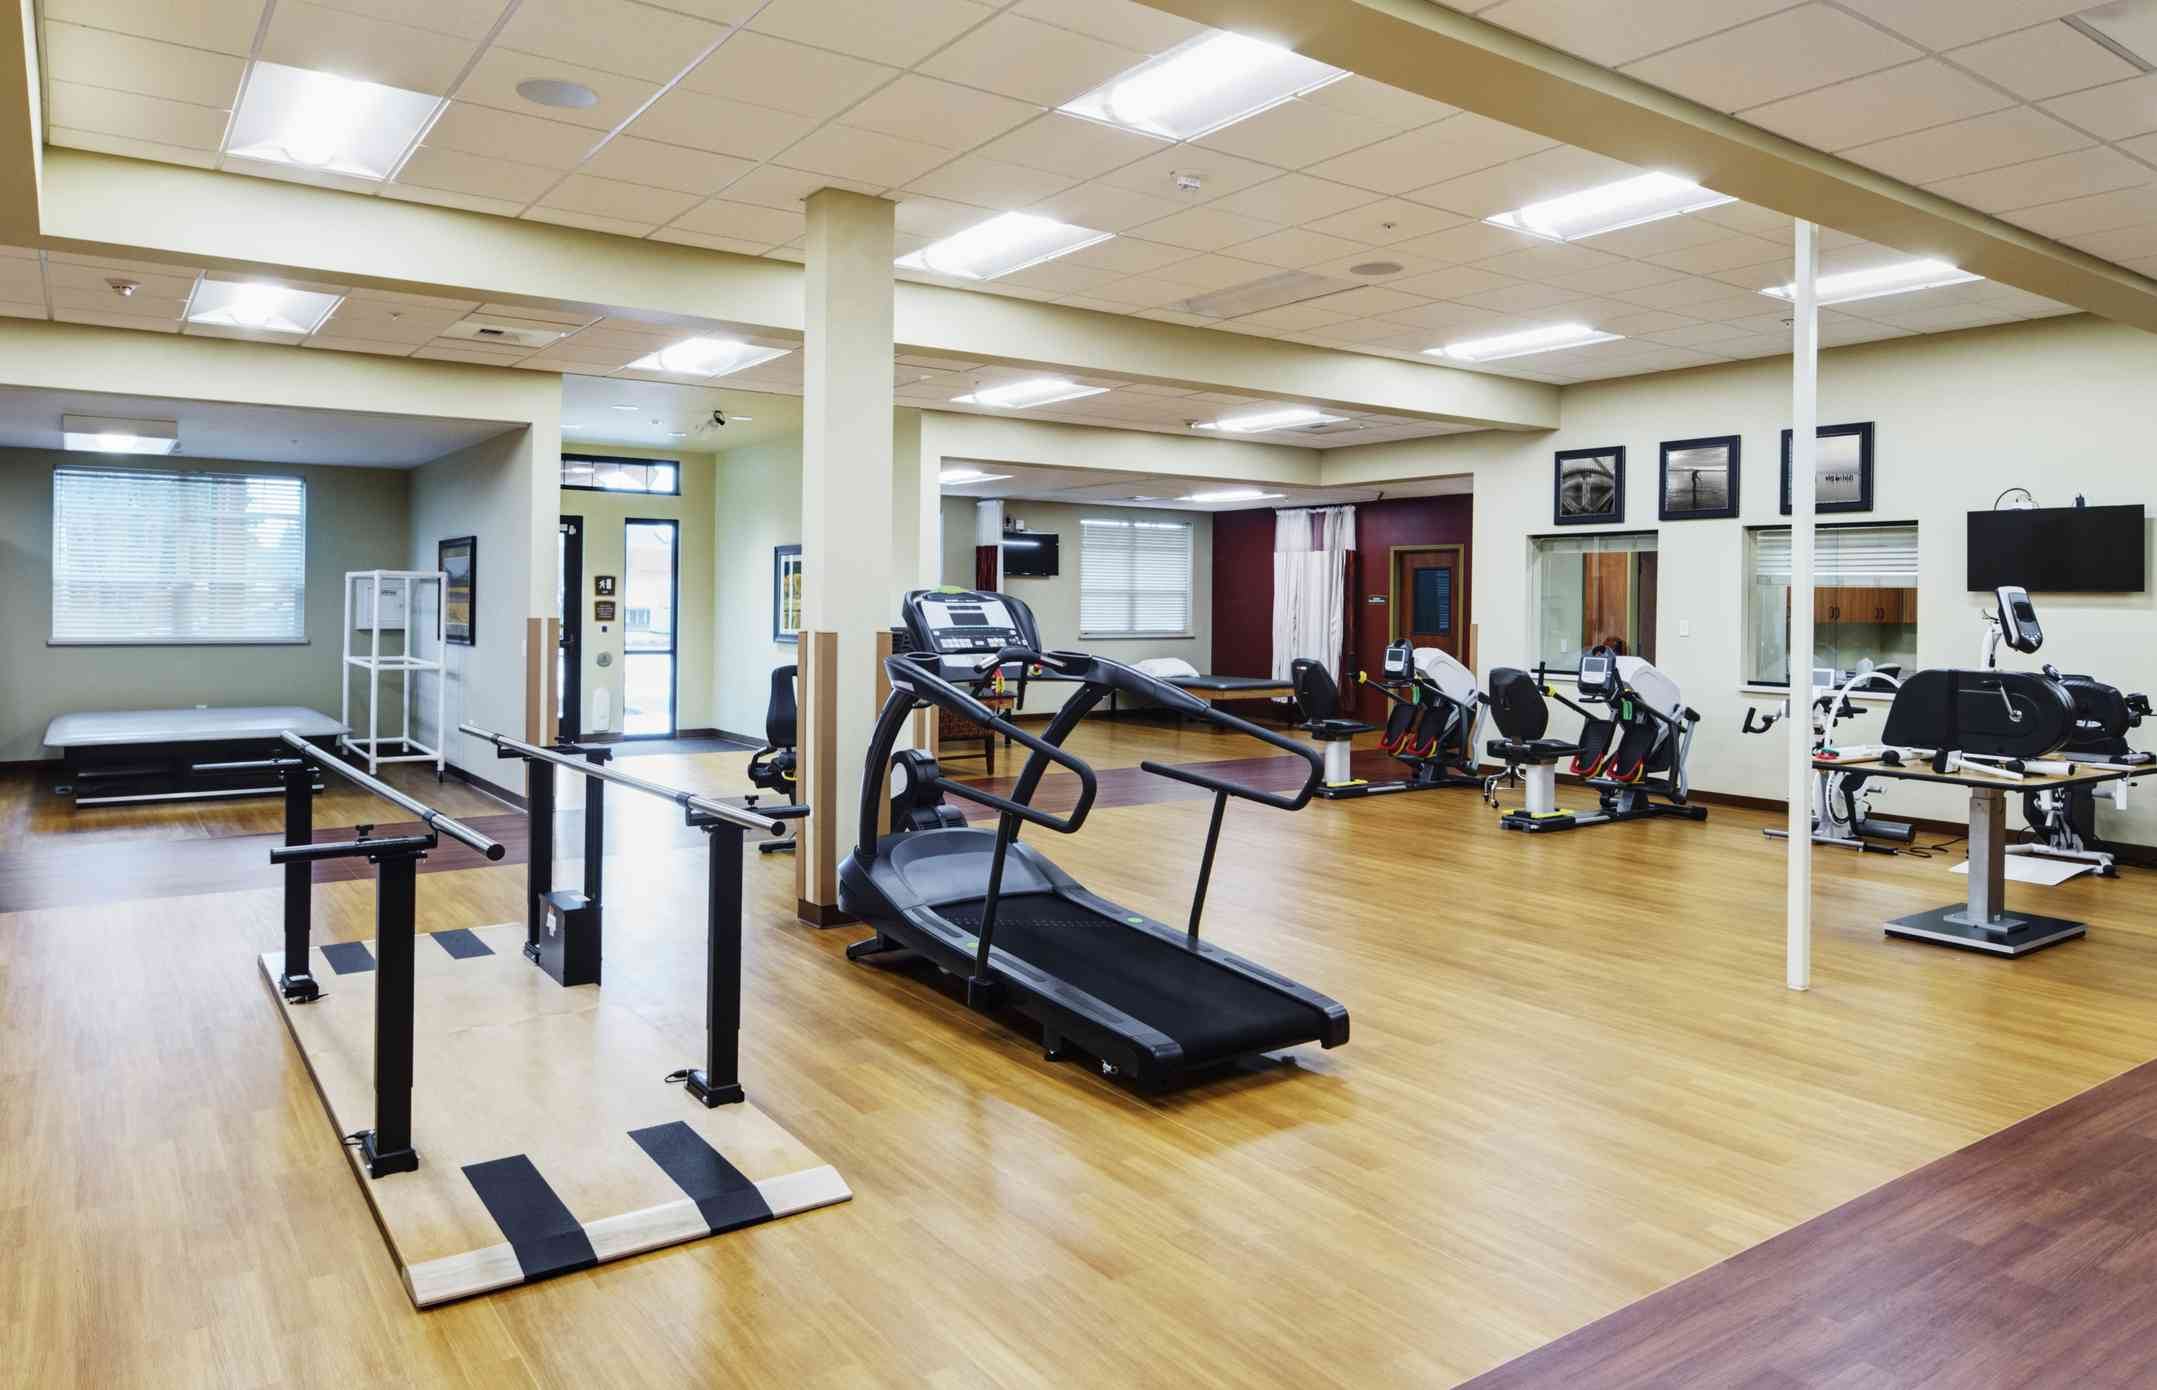 10 Key Questions to Ask a Physical Rehab Facility